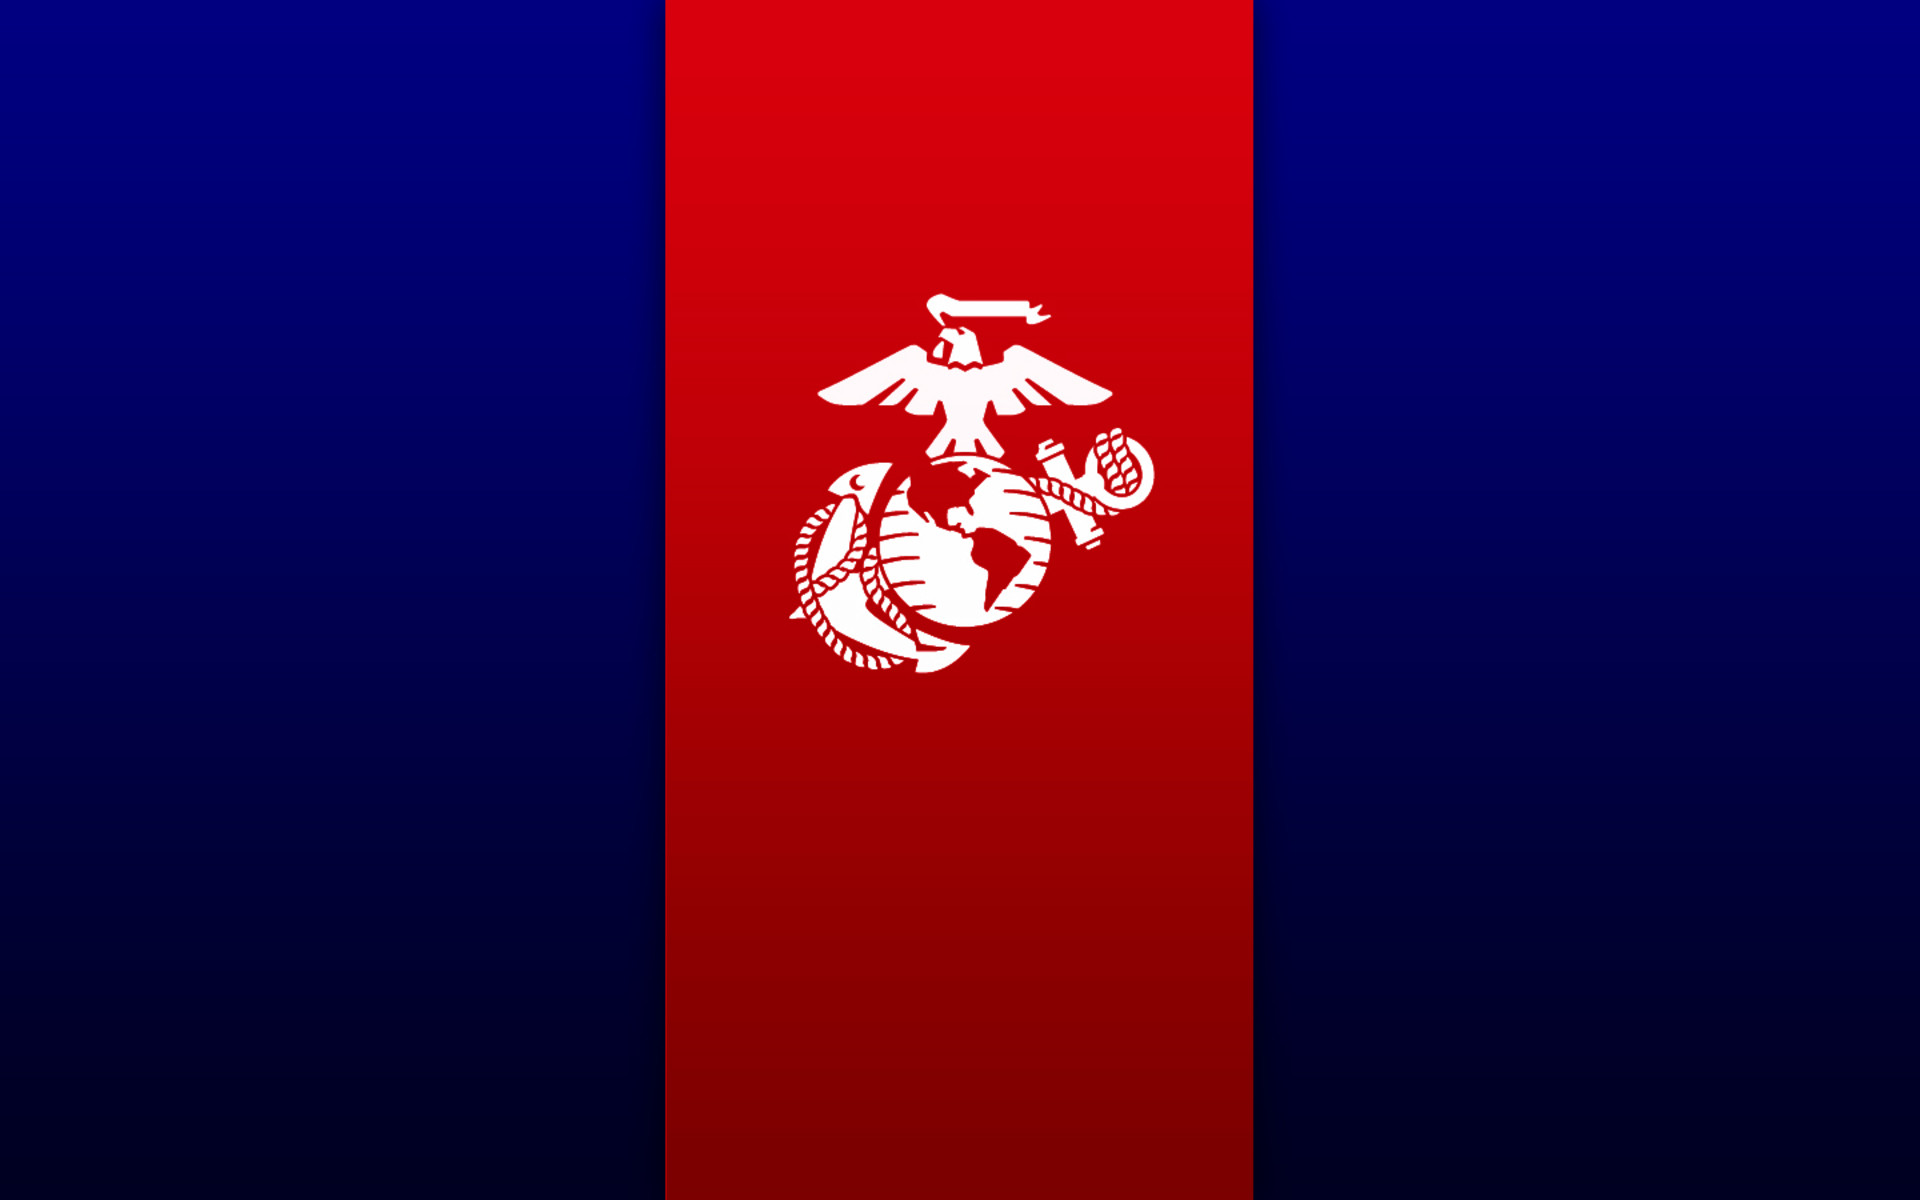 1920x1200 1920x1440 Px HD Desktop Wallpaper : Wallpapers Usmc Red And Blue Background